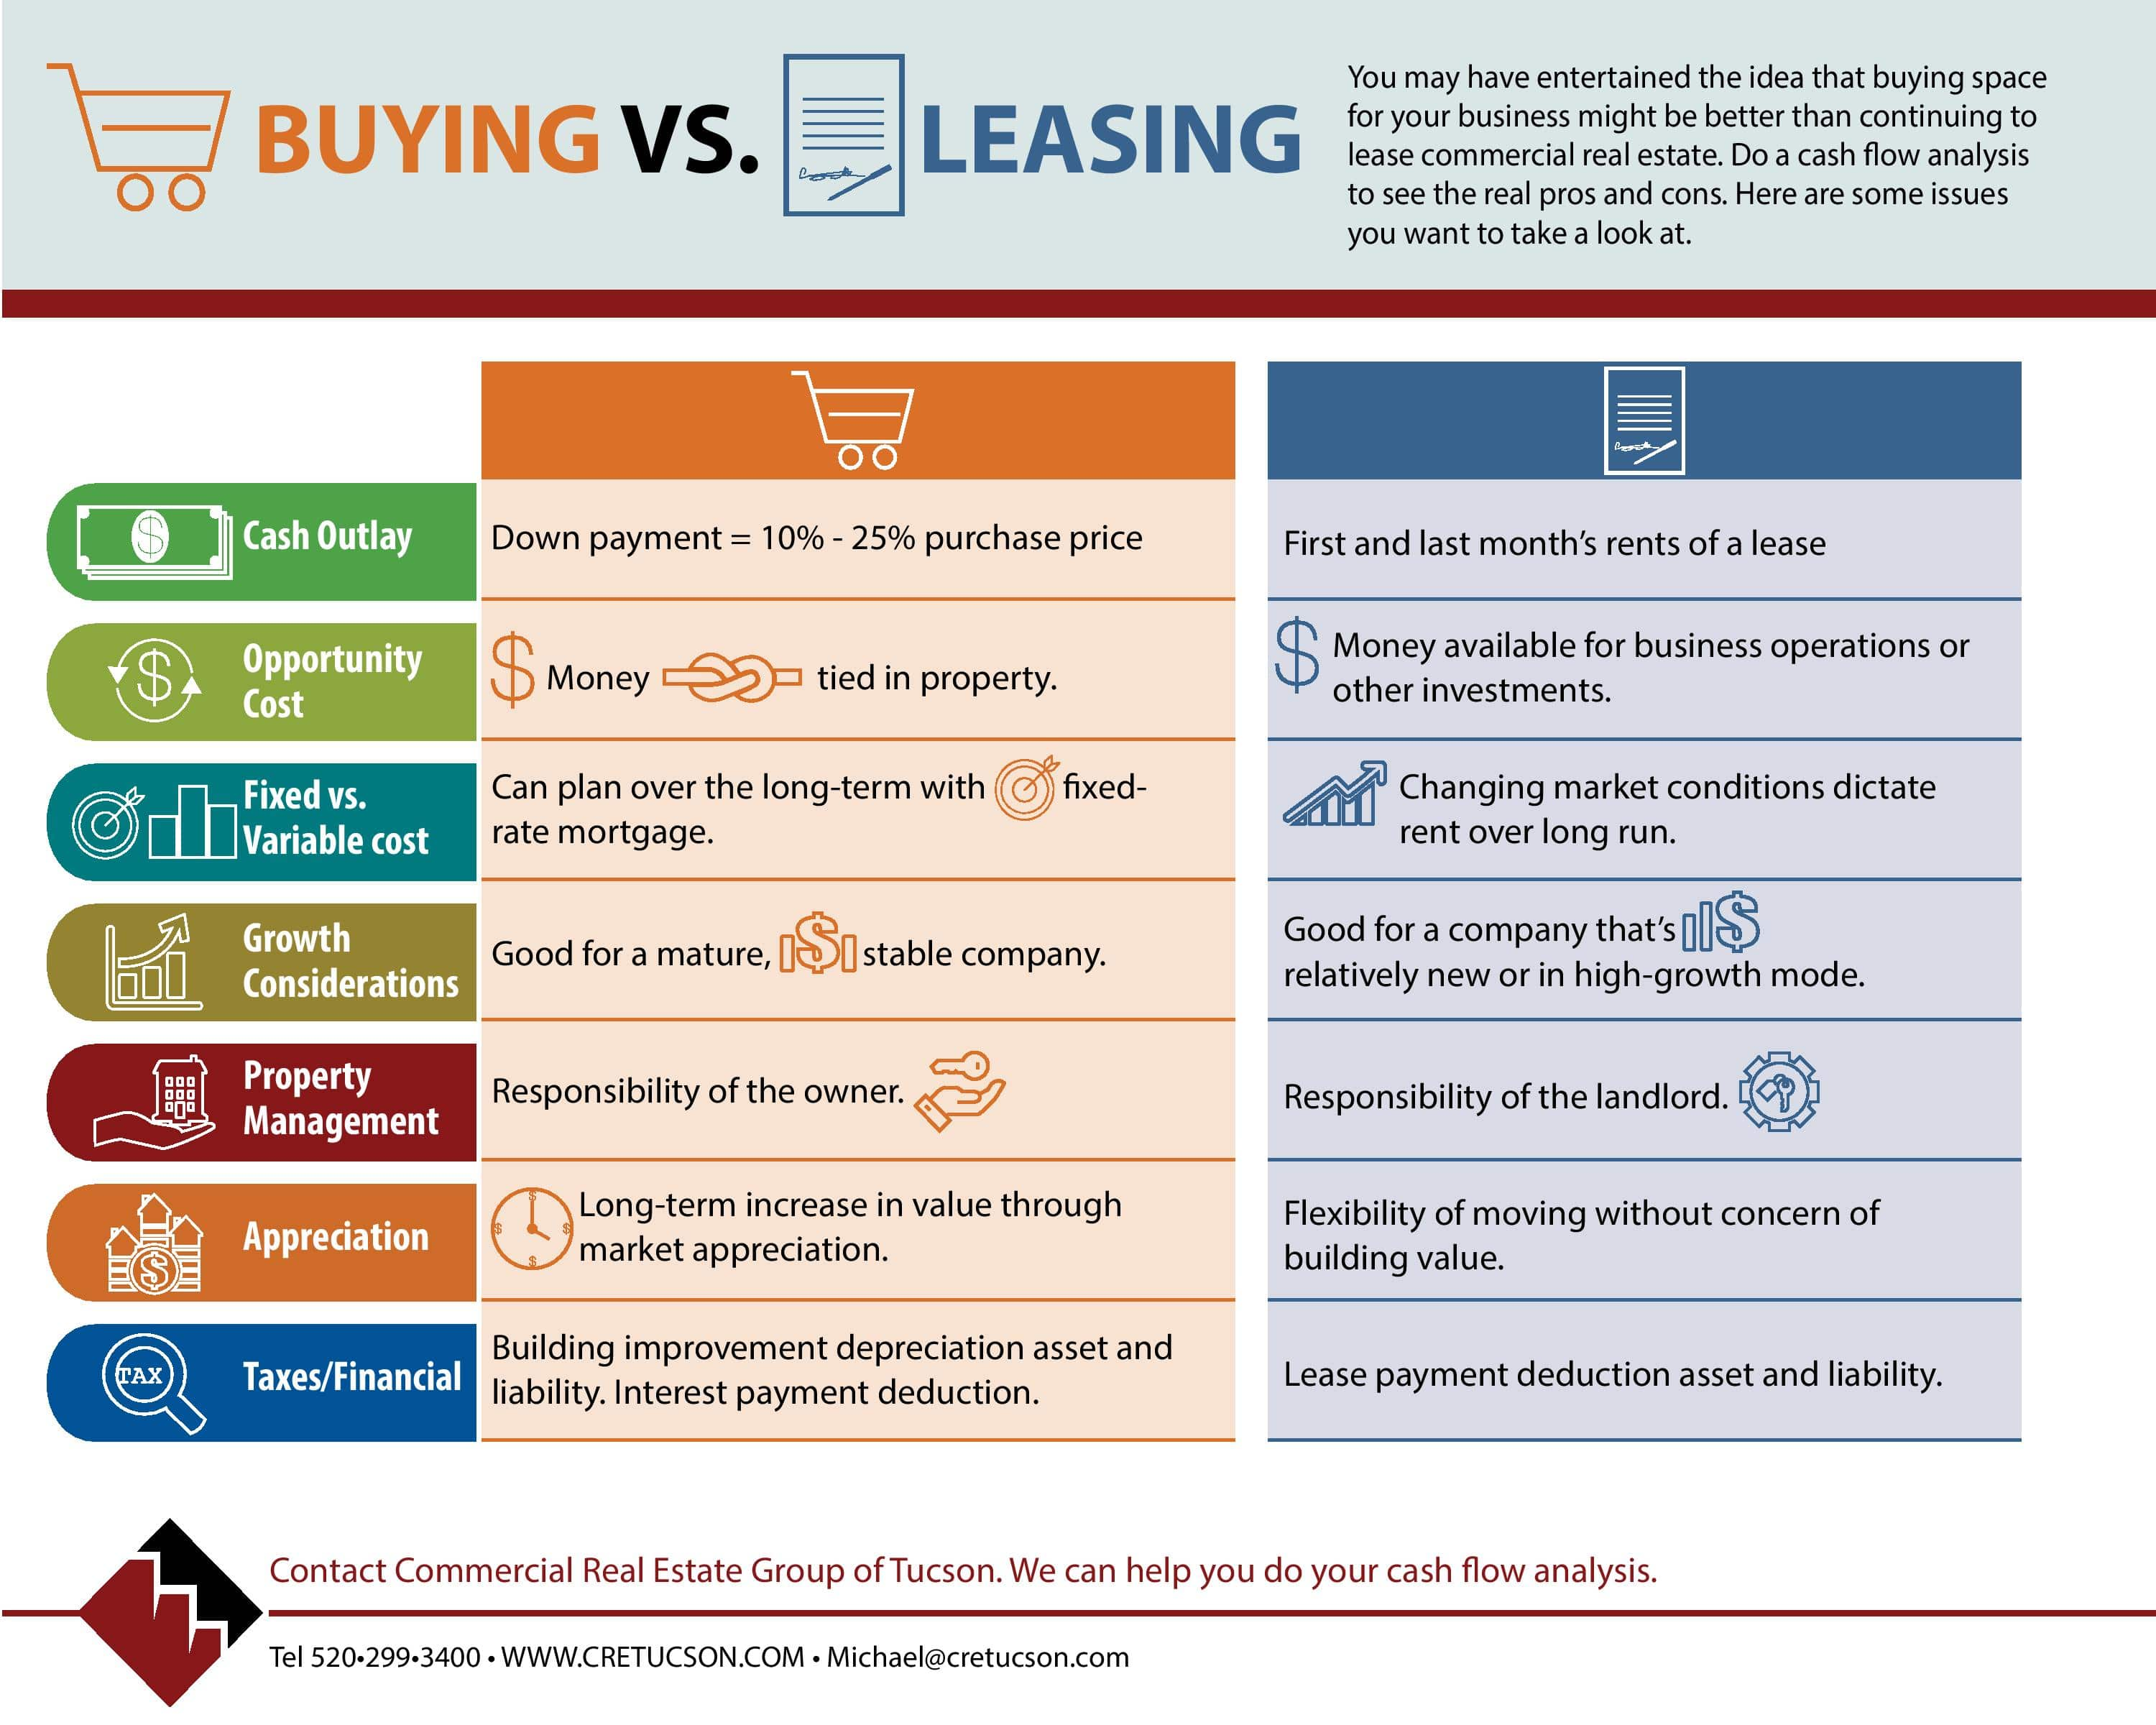 Buying vs Leasing - CRETucson Infographic